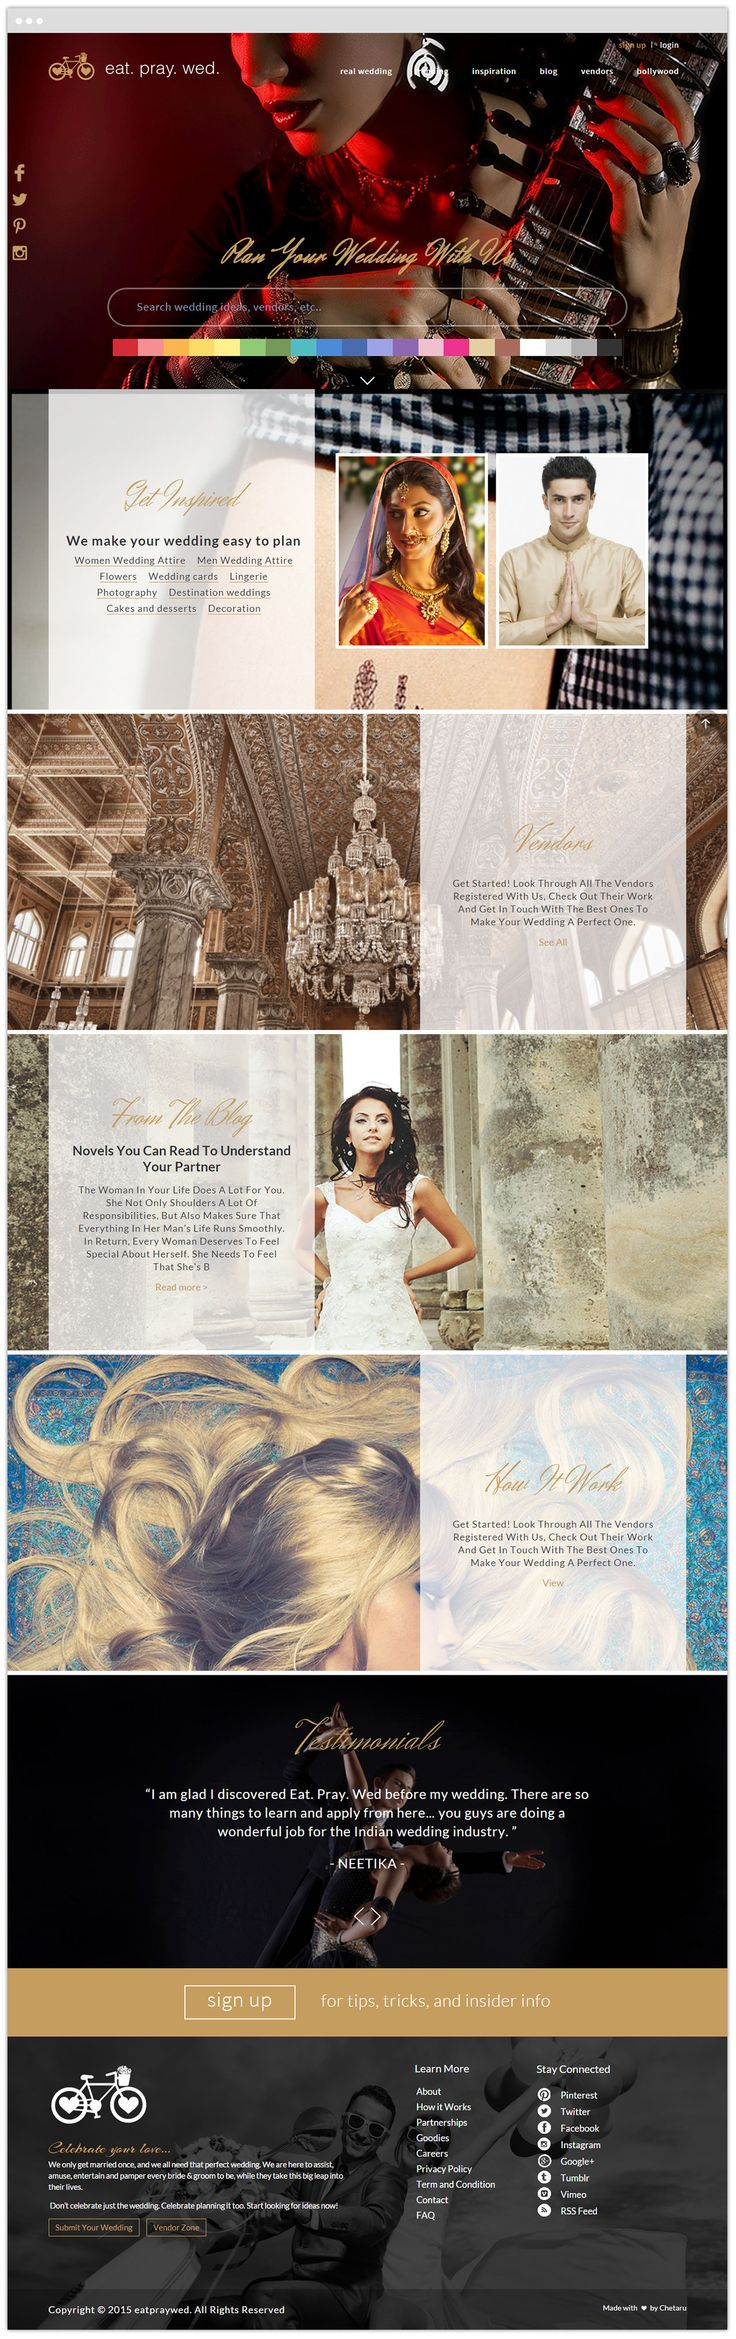 Eat Pray Wed presents the unique Wedding Ideas through which you can make your wedding exciting and memorable.   #Responsive #WeddingWebsite #Html5